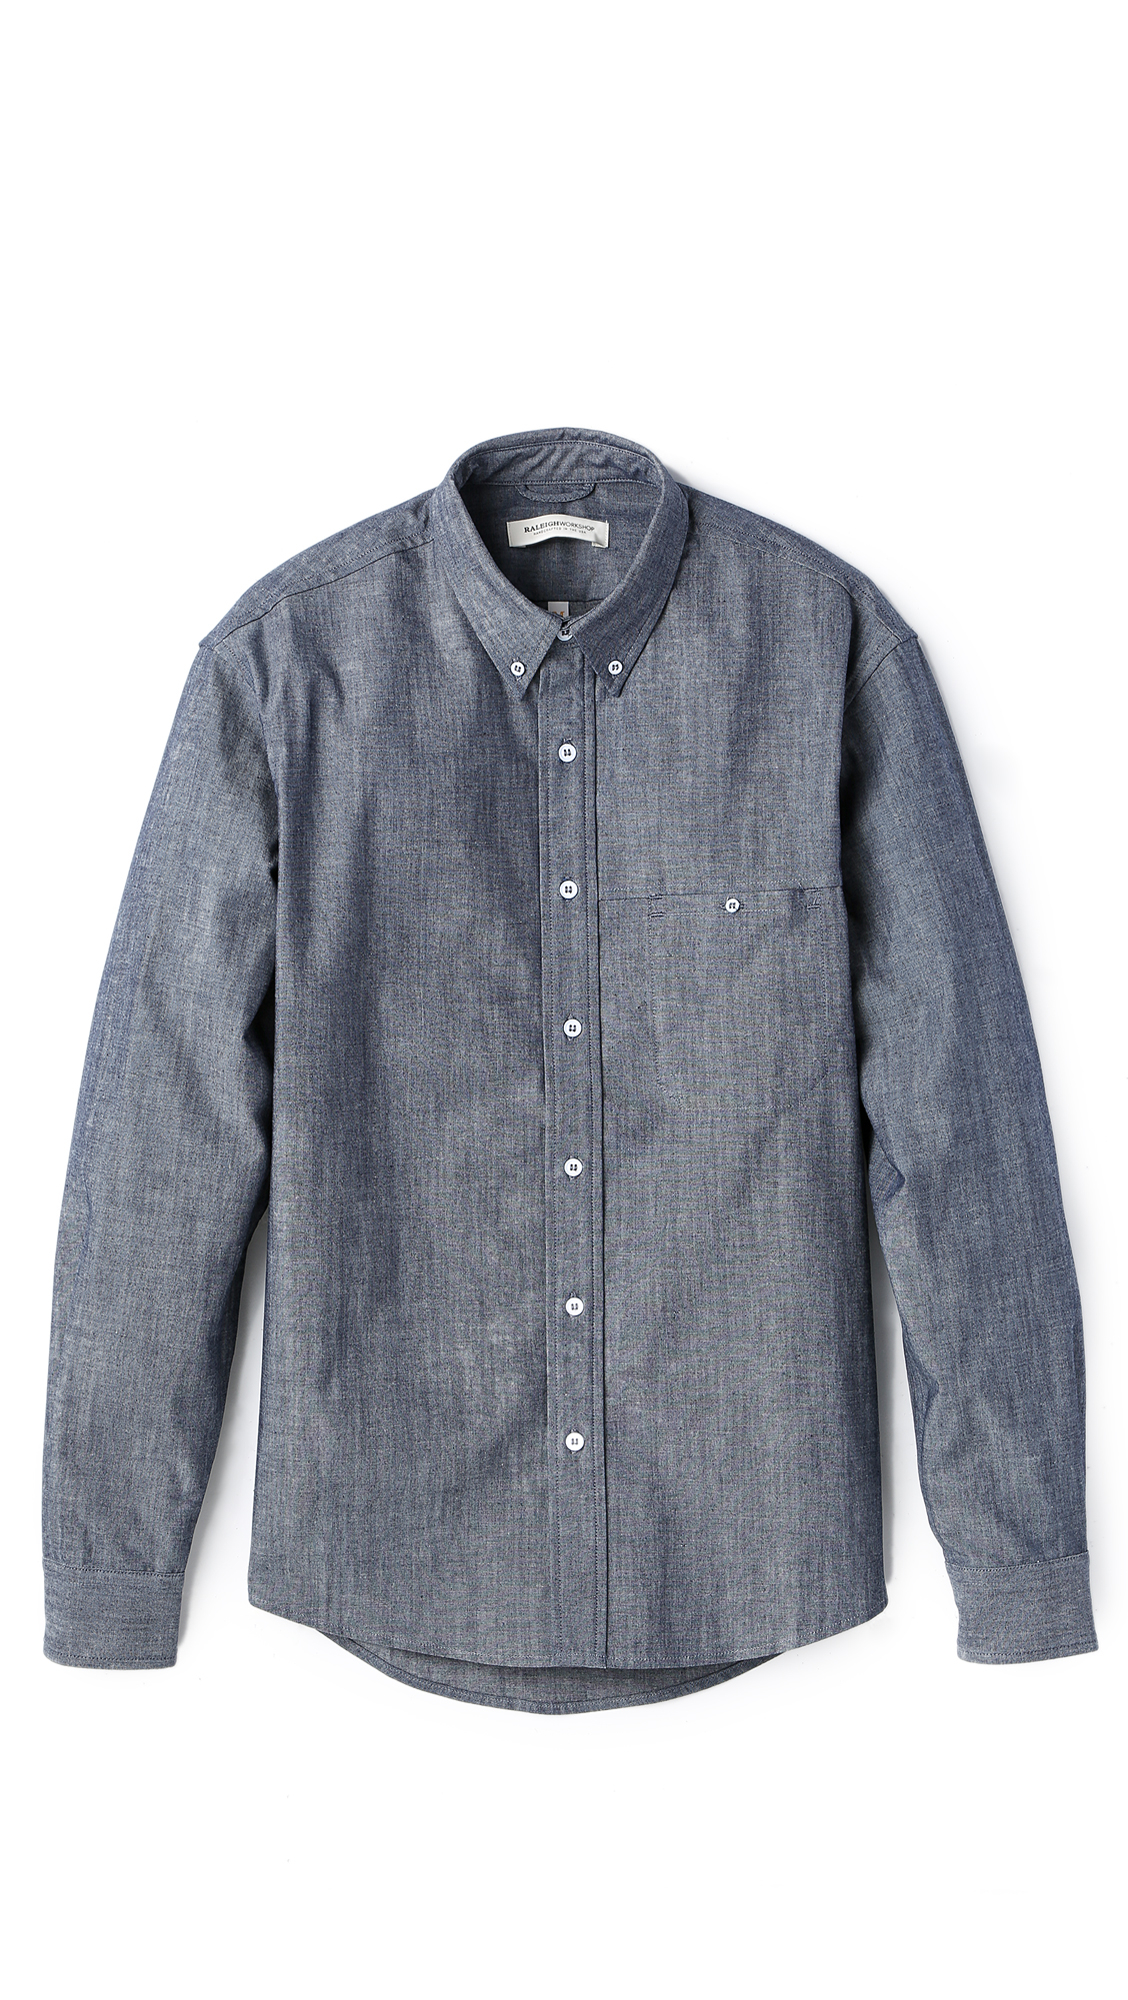 Raleigh denim welt pocket chambray shirt in blue for men for Chambray jeans